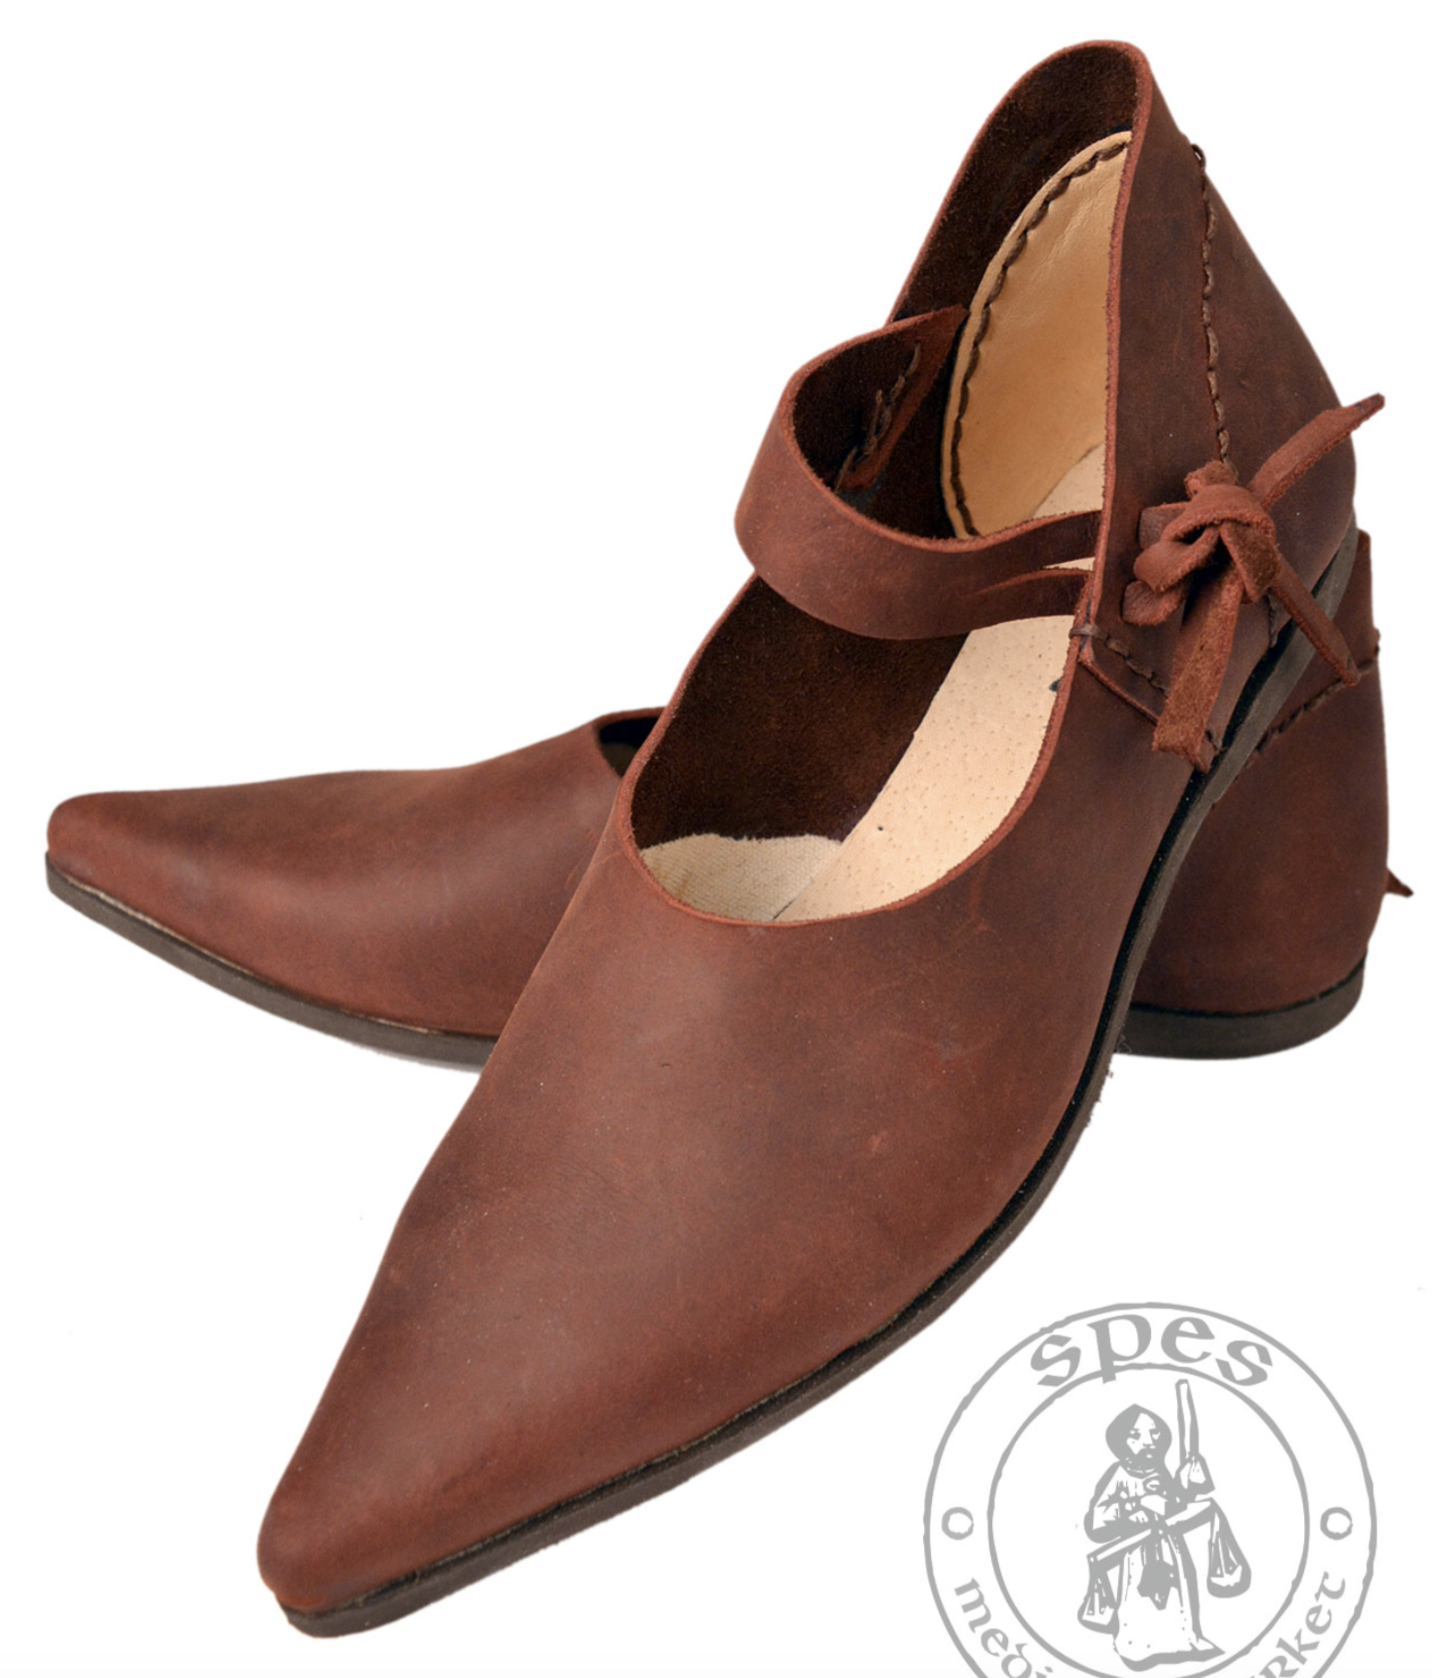 Chaussures Dame : KSS1435 - 120 €